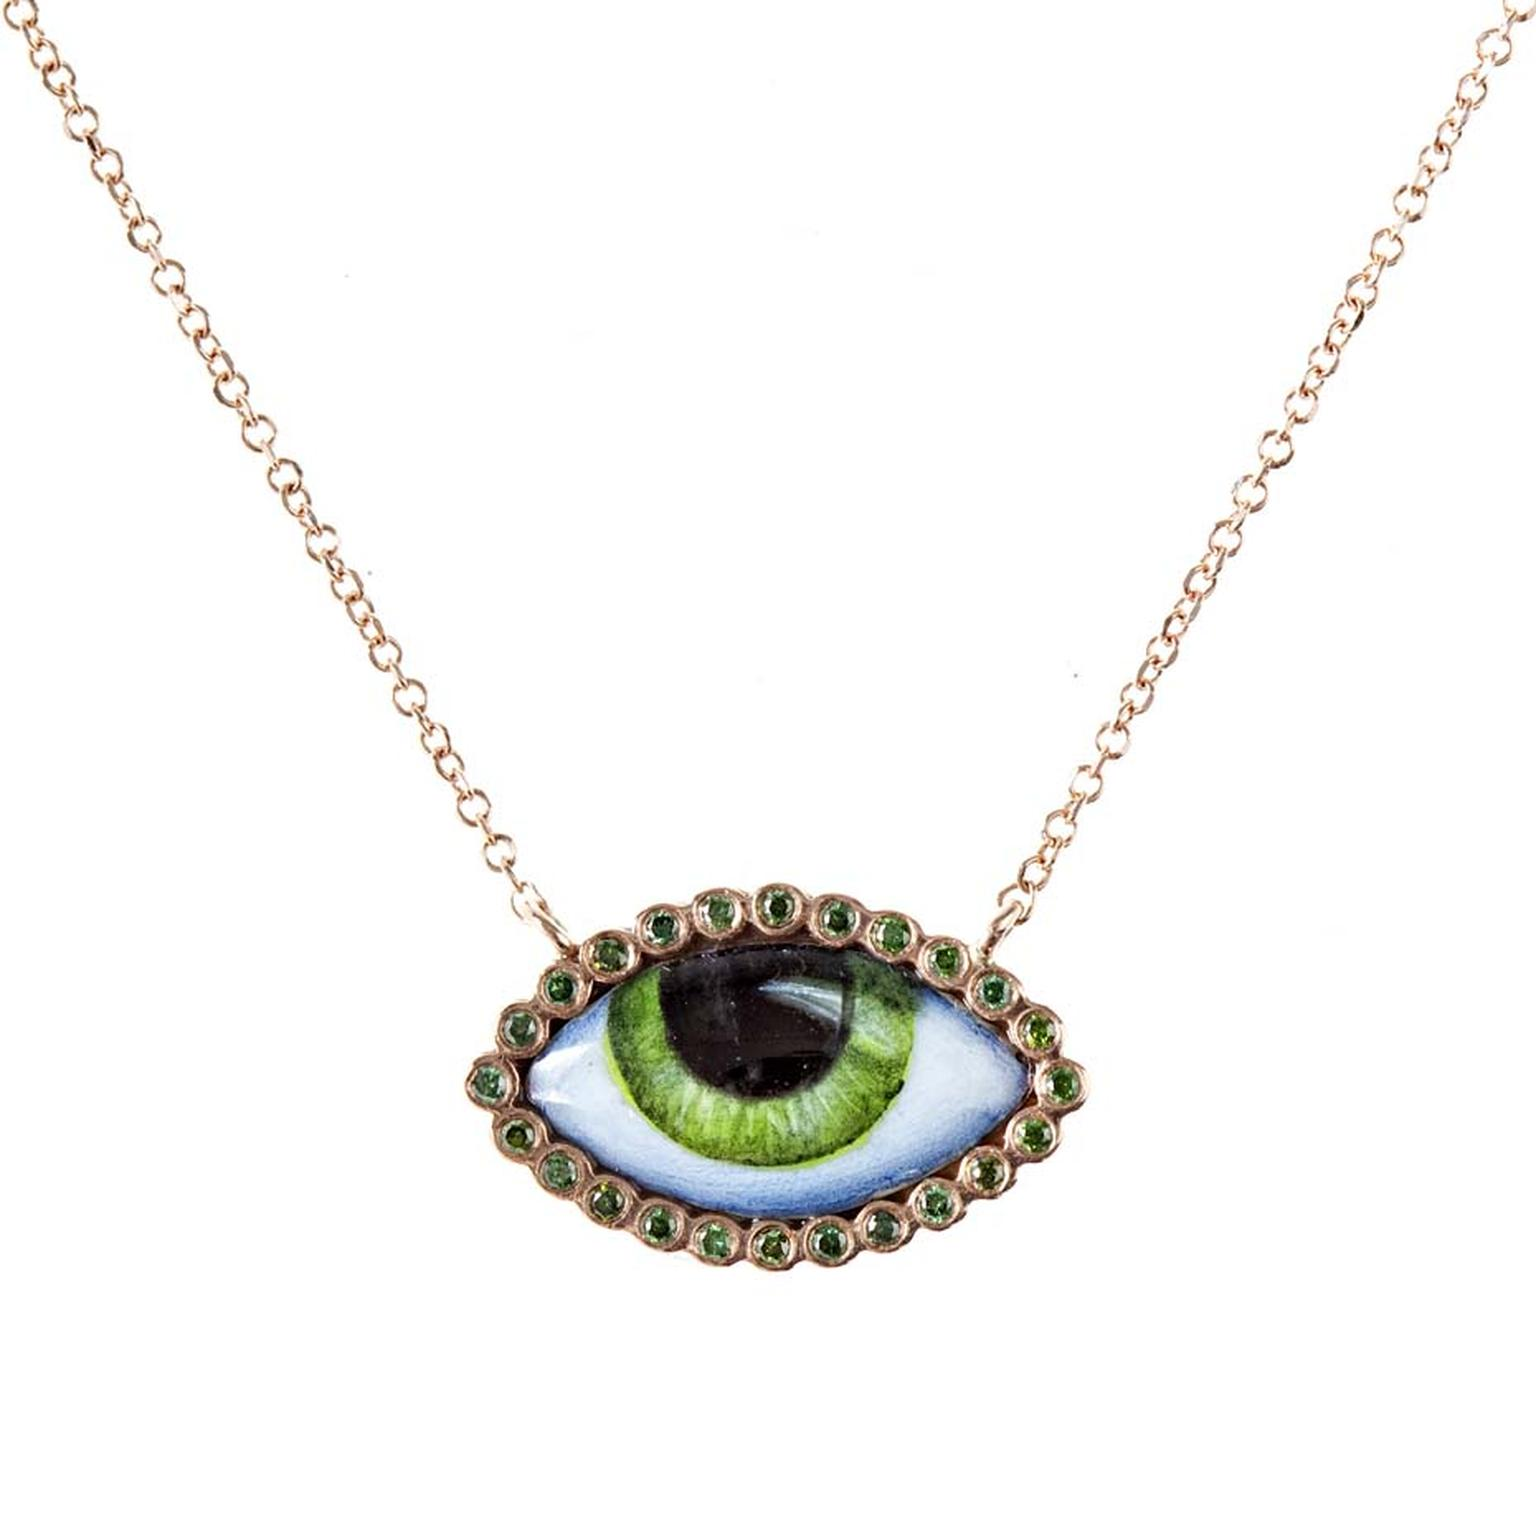 Lito Her Tu Es Partout necklace in rose gold featuring a green enamelled eye surrounded by green diamonds ($1,070).